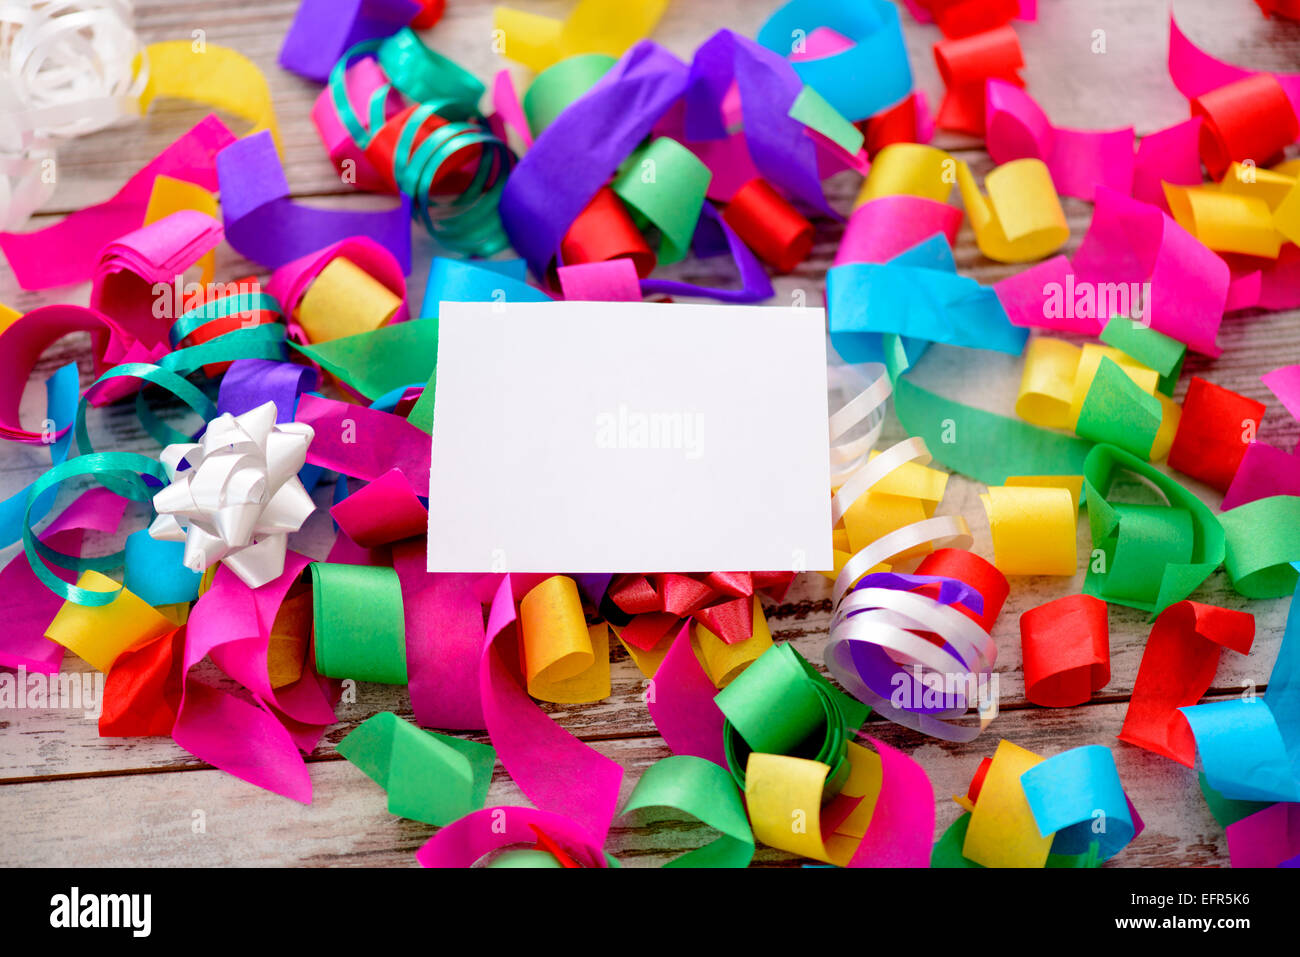 Greeting card in the pile of confetti - Stock Image